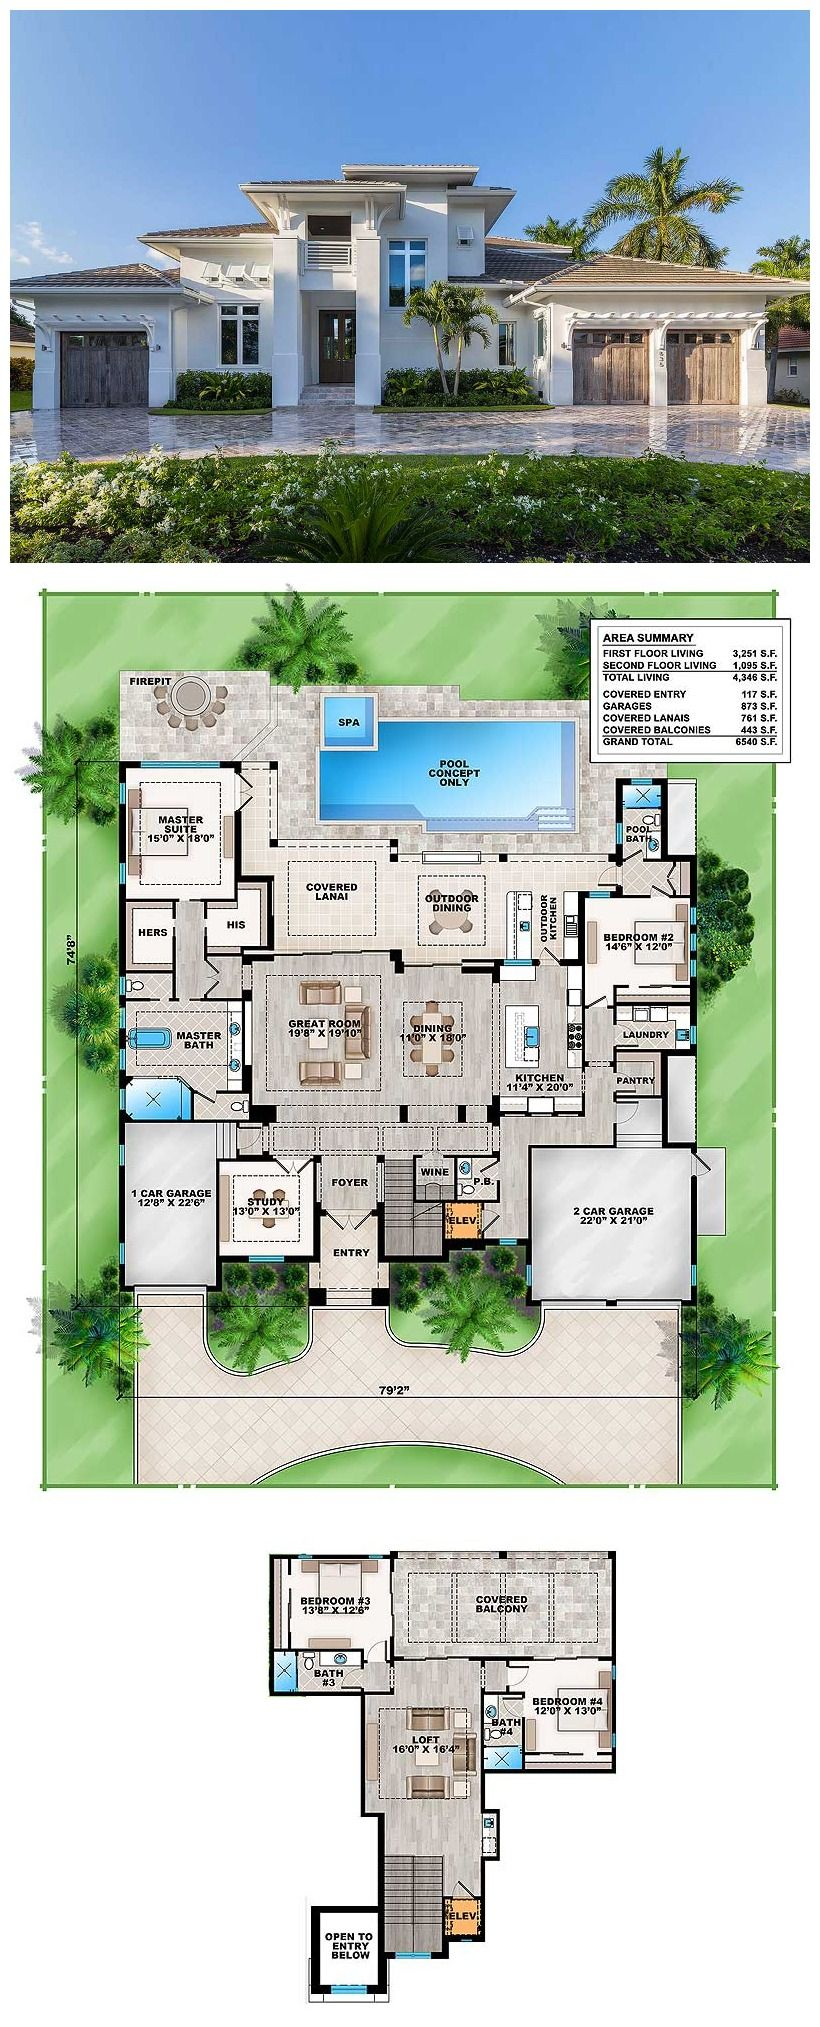 Grand Florida House Plan With a huge open layout and lots of luxurious details this grand Florida house plan is made for high end living Walls of sliding glass doors in the great room area not only bring in light and views they take you outdoors to the fabulous outdoor lanai with its summer kitchen